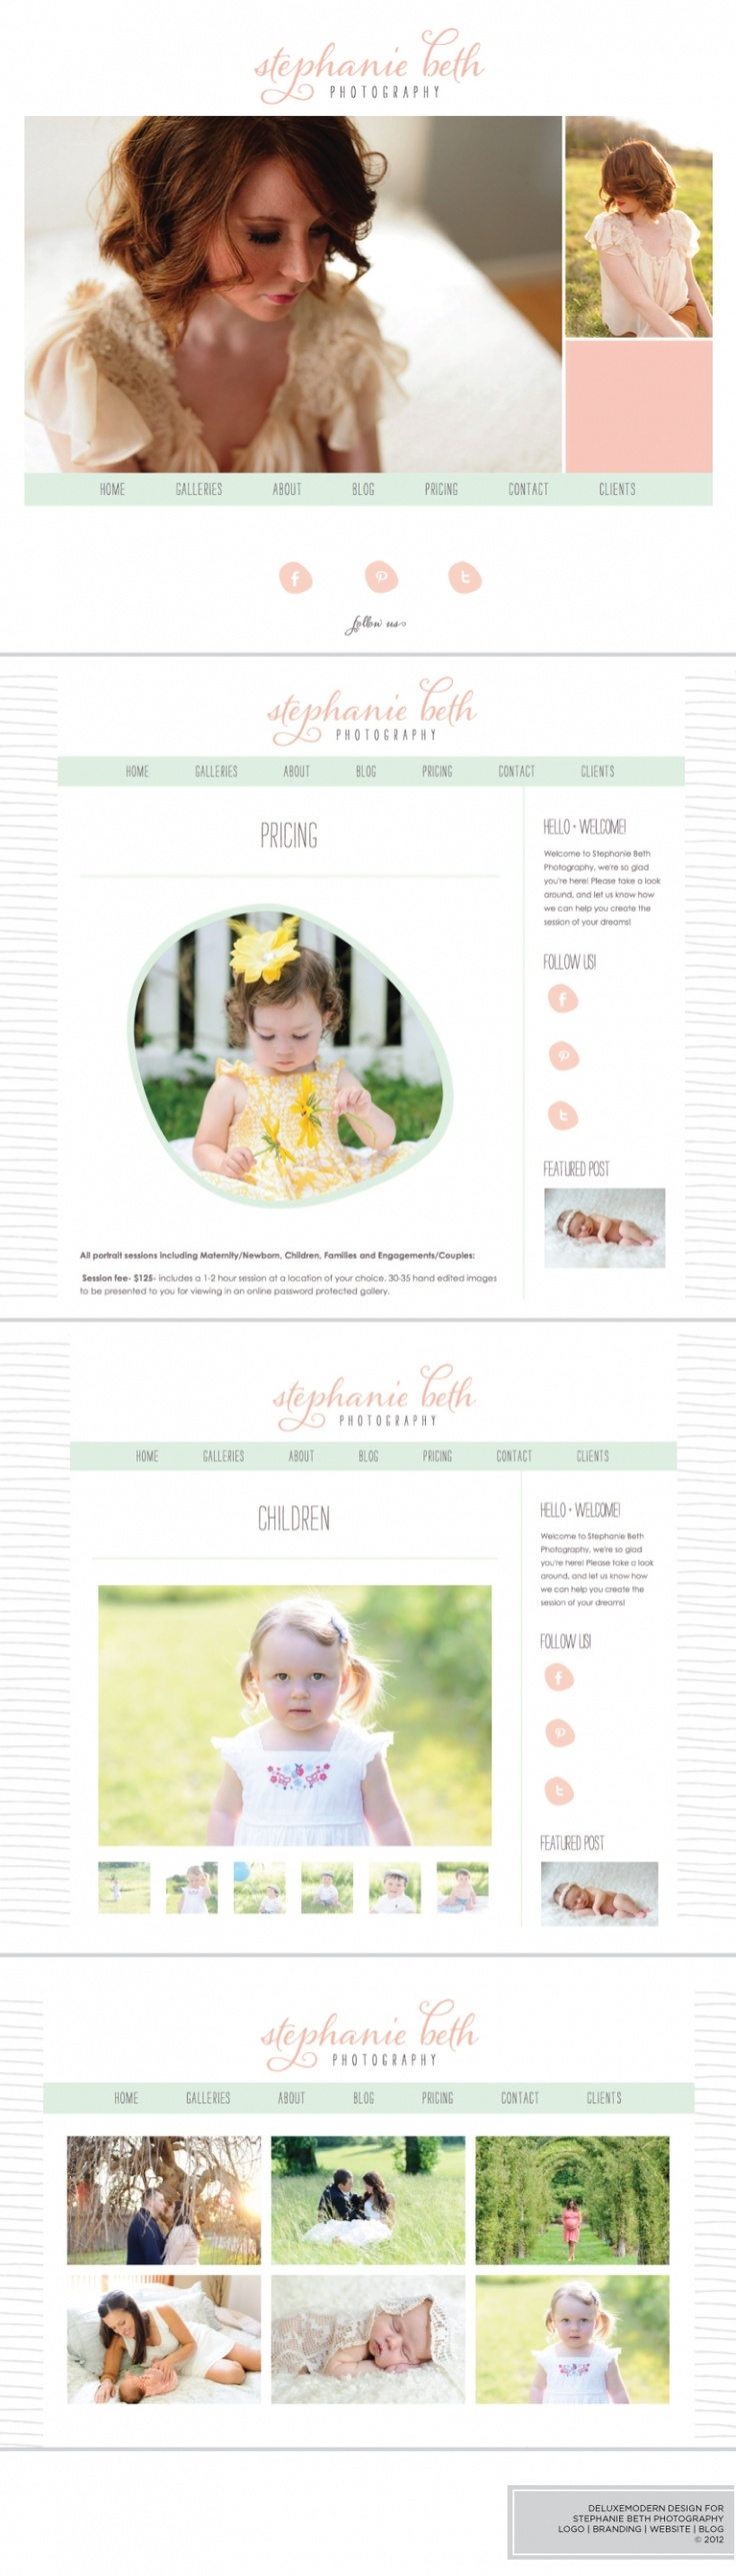 website layout. blog layout. / inspiration